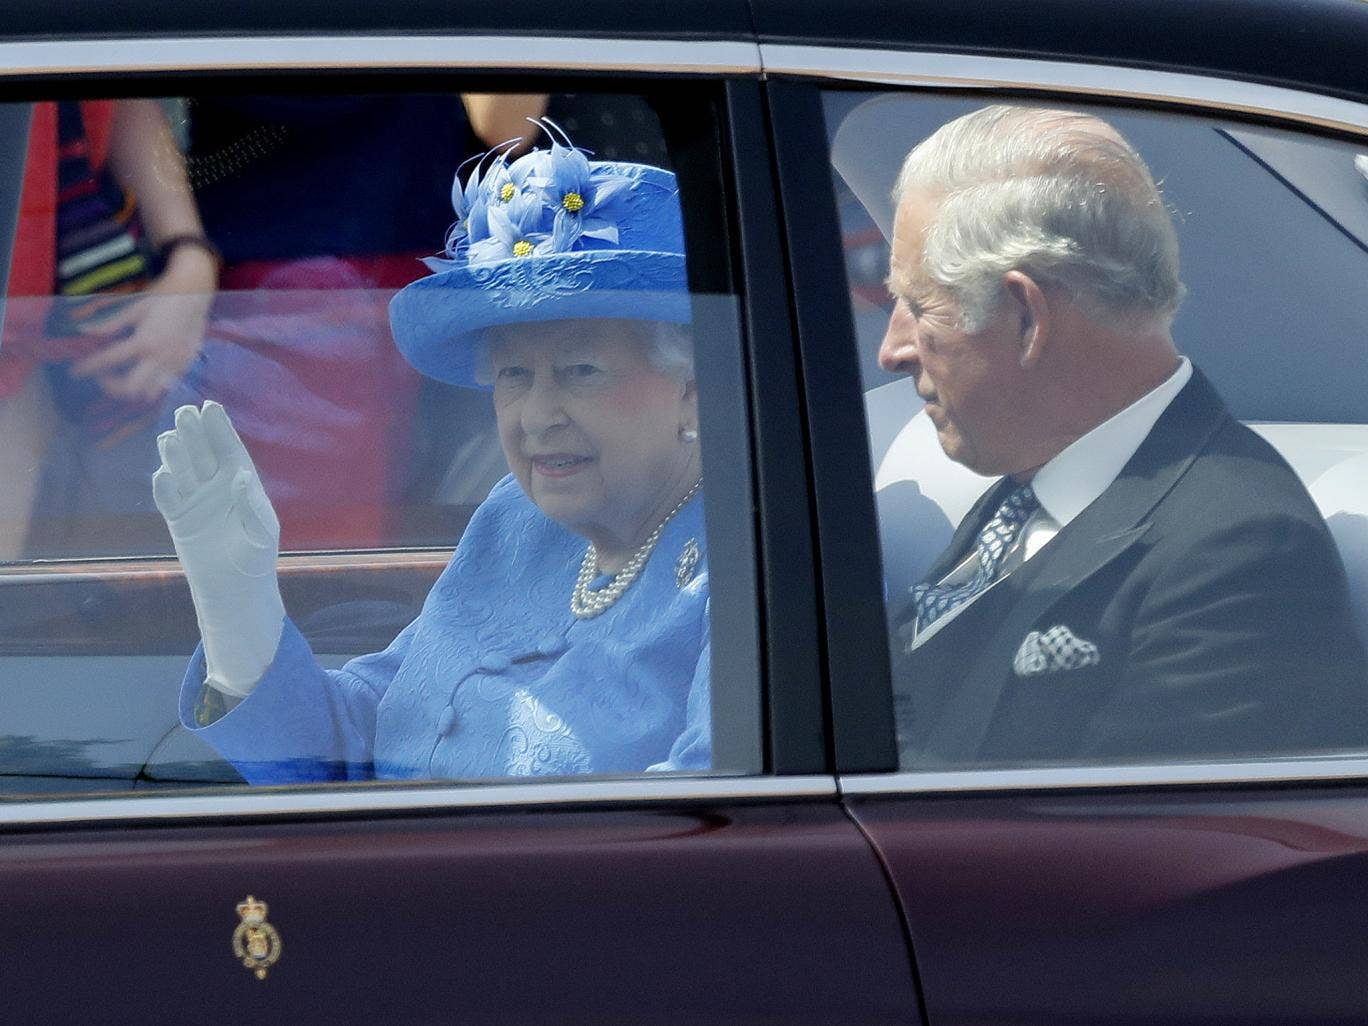 Queen Elizabeth II Reported To The Police For Not Using Seat Belt!